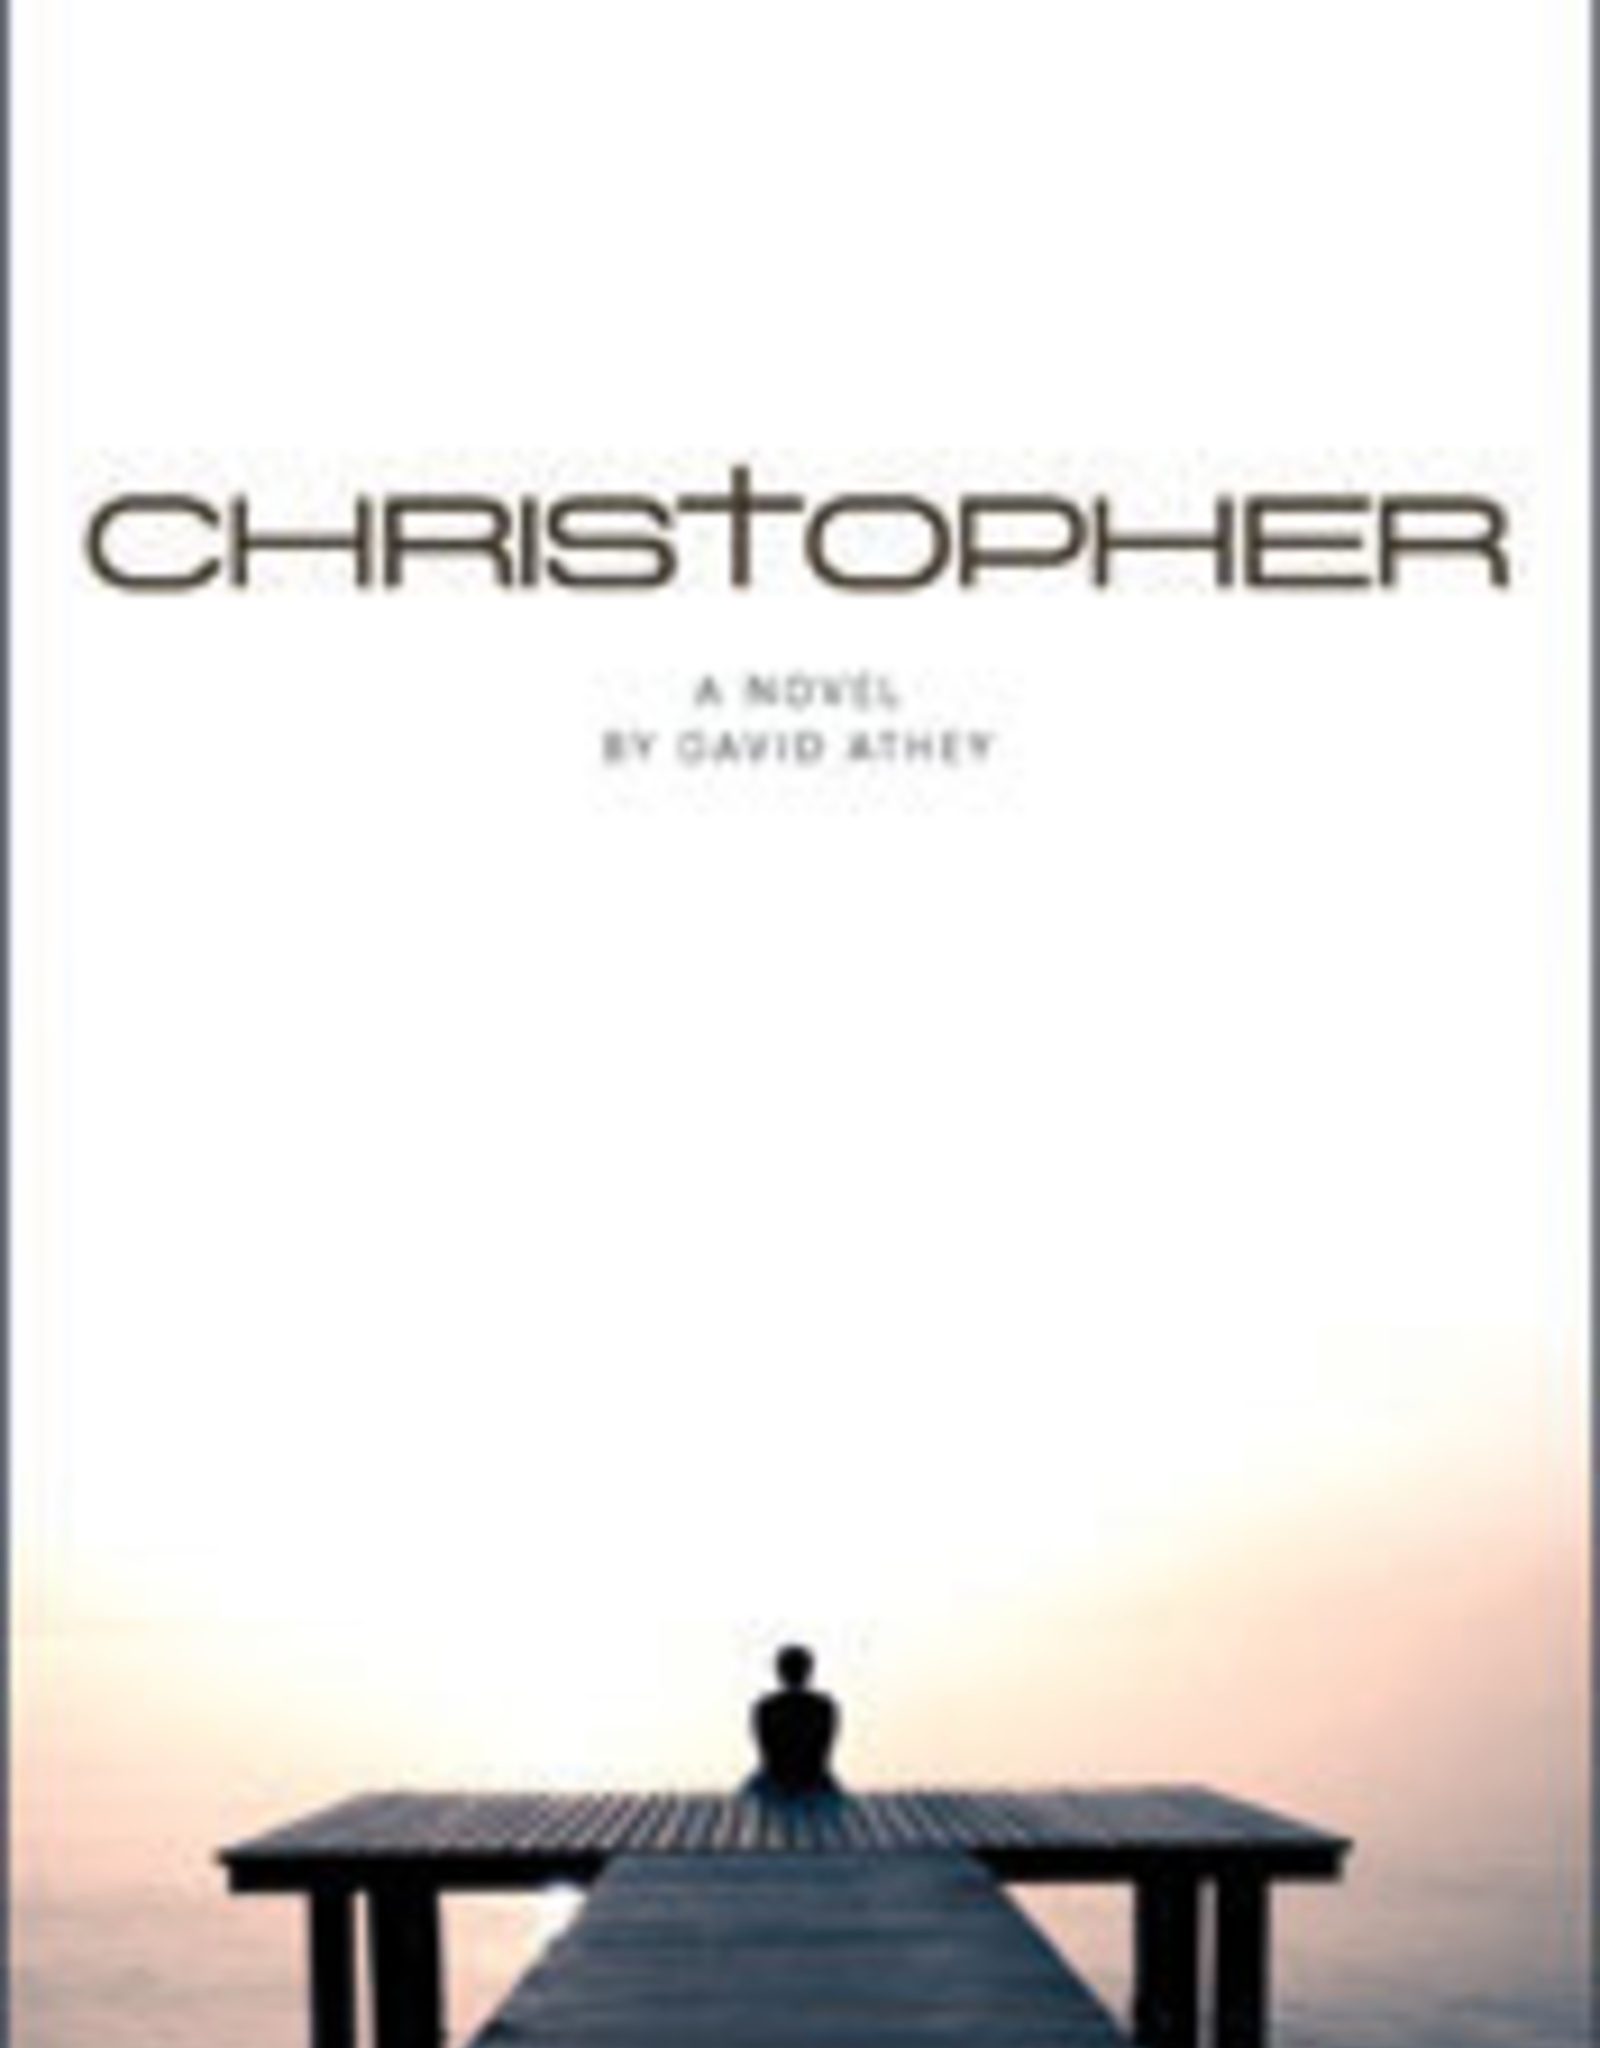 Sophia Institute Christopher:  A Novel, by David Athey